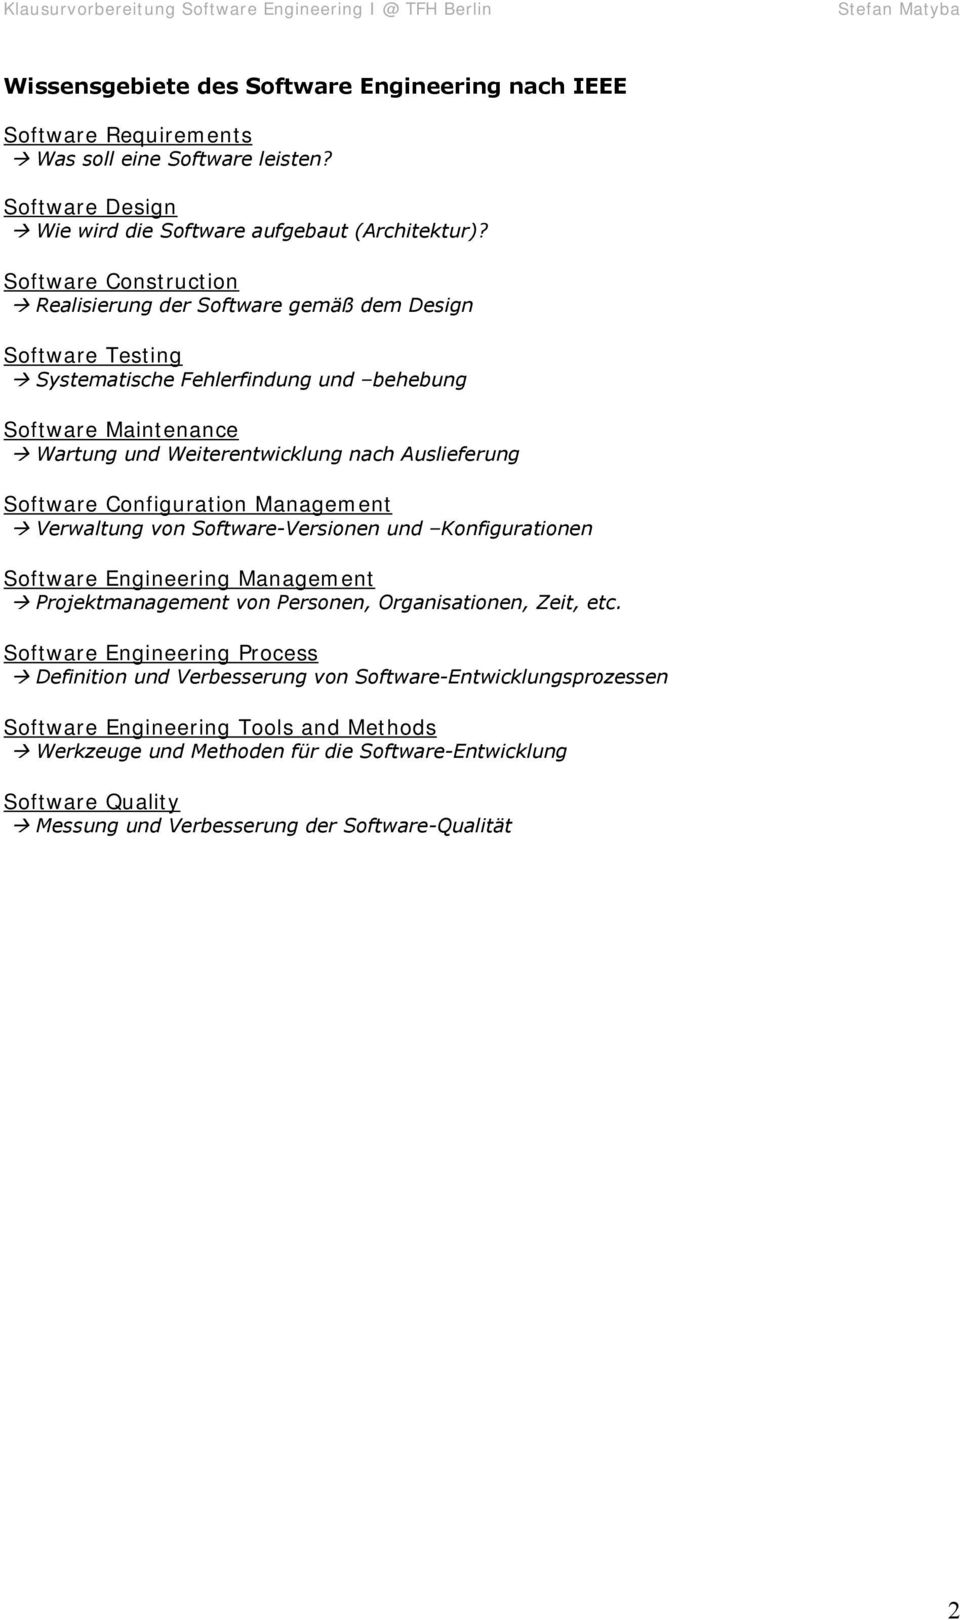 Software Configuration Management Verwaltung von Software-Versionen und Konfigurationen Software Engineering Management Projektmanagement von Personen, Organisationen, Zeit, etc.